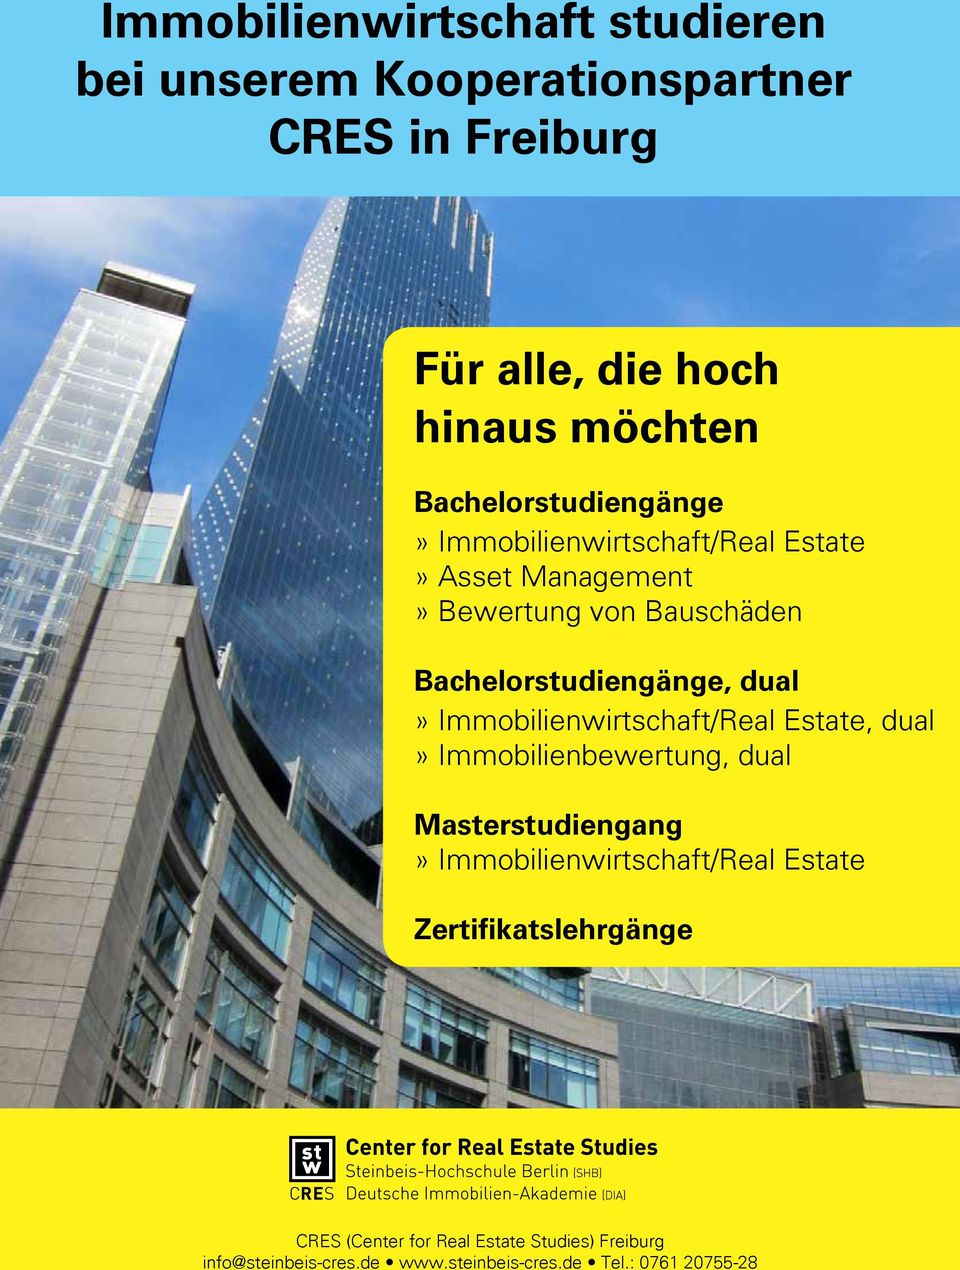 dual» Immobilienwirtschaft/Real Estate, dual» Immobilienbewertung, dual Masterstudiengang» Immobilienwirtschaft/Real